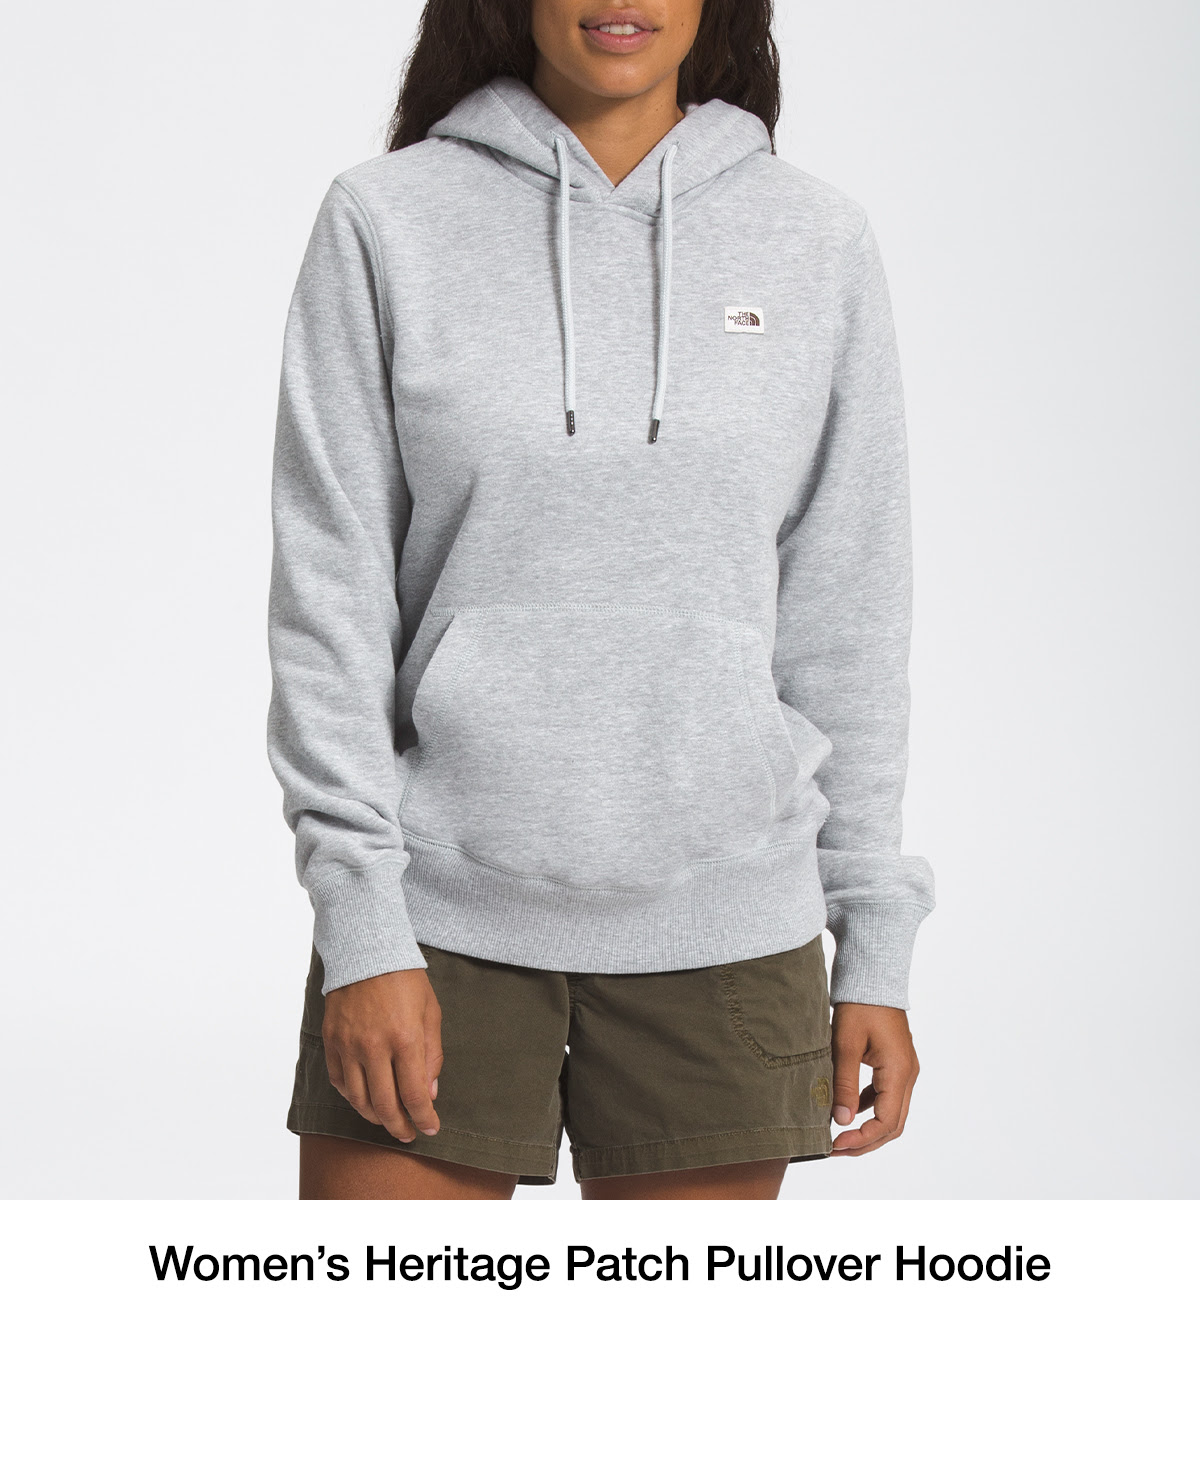 Women's Heritage Patch Pullover Hoodie